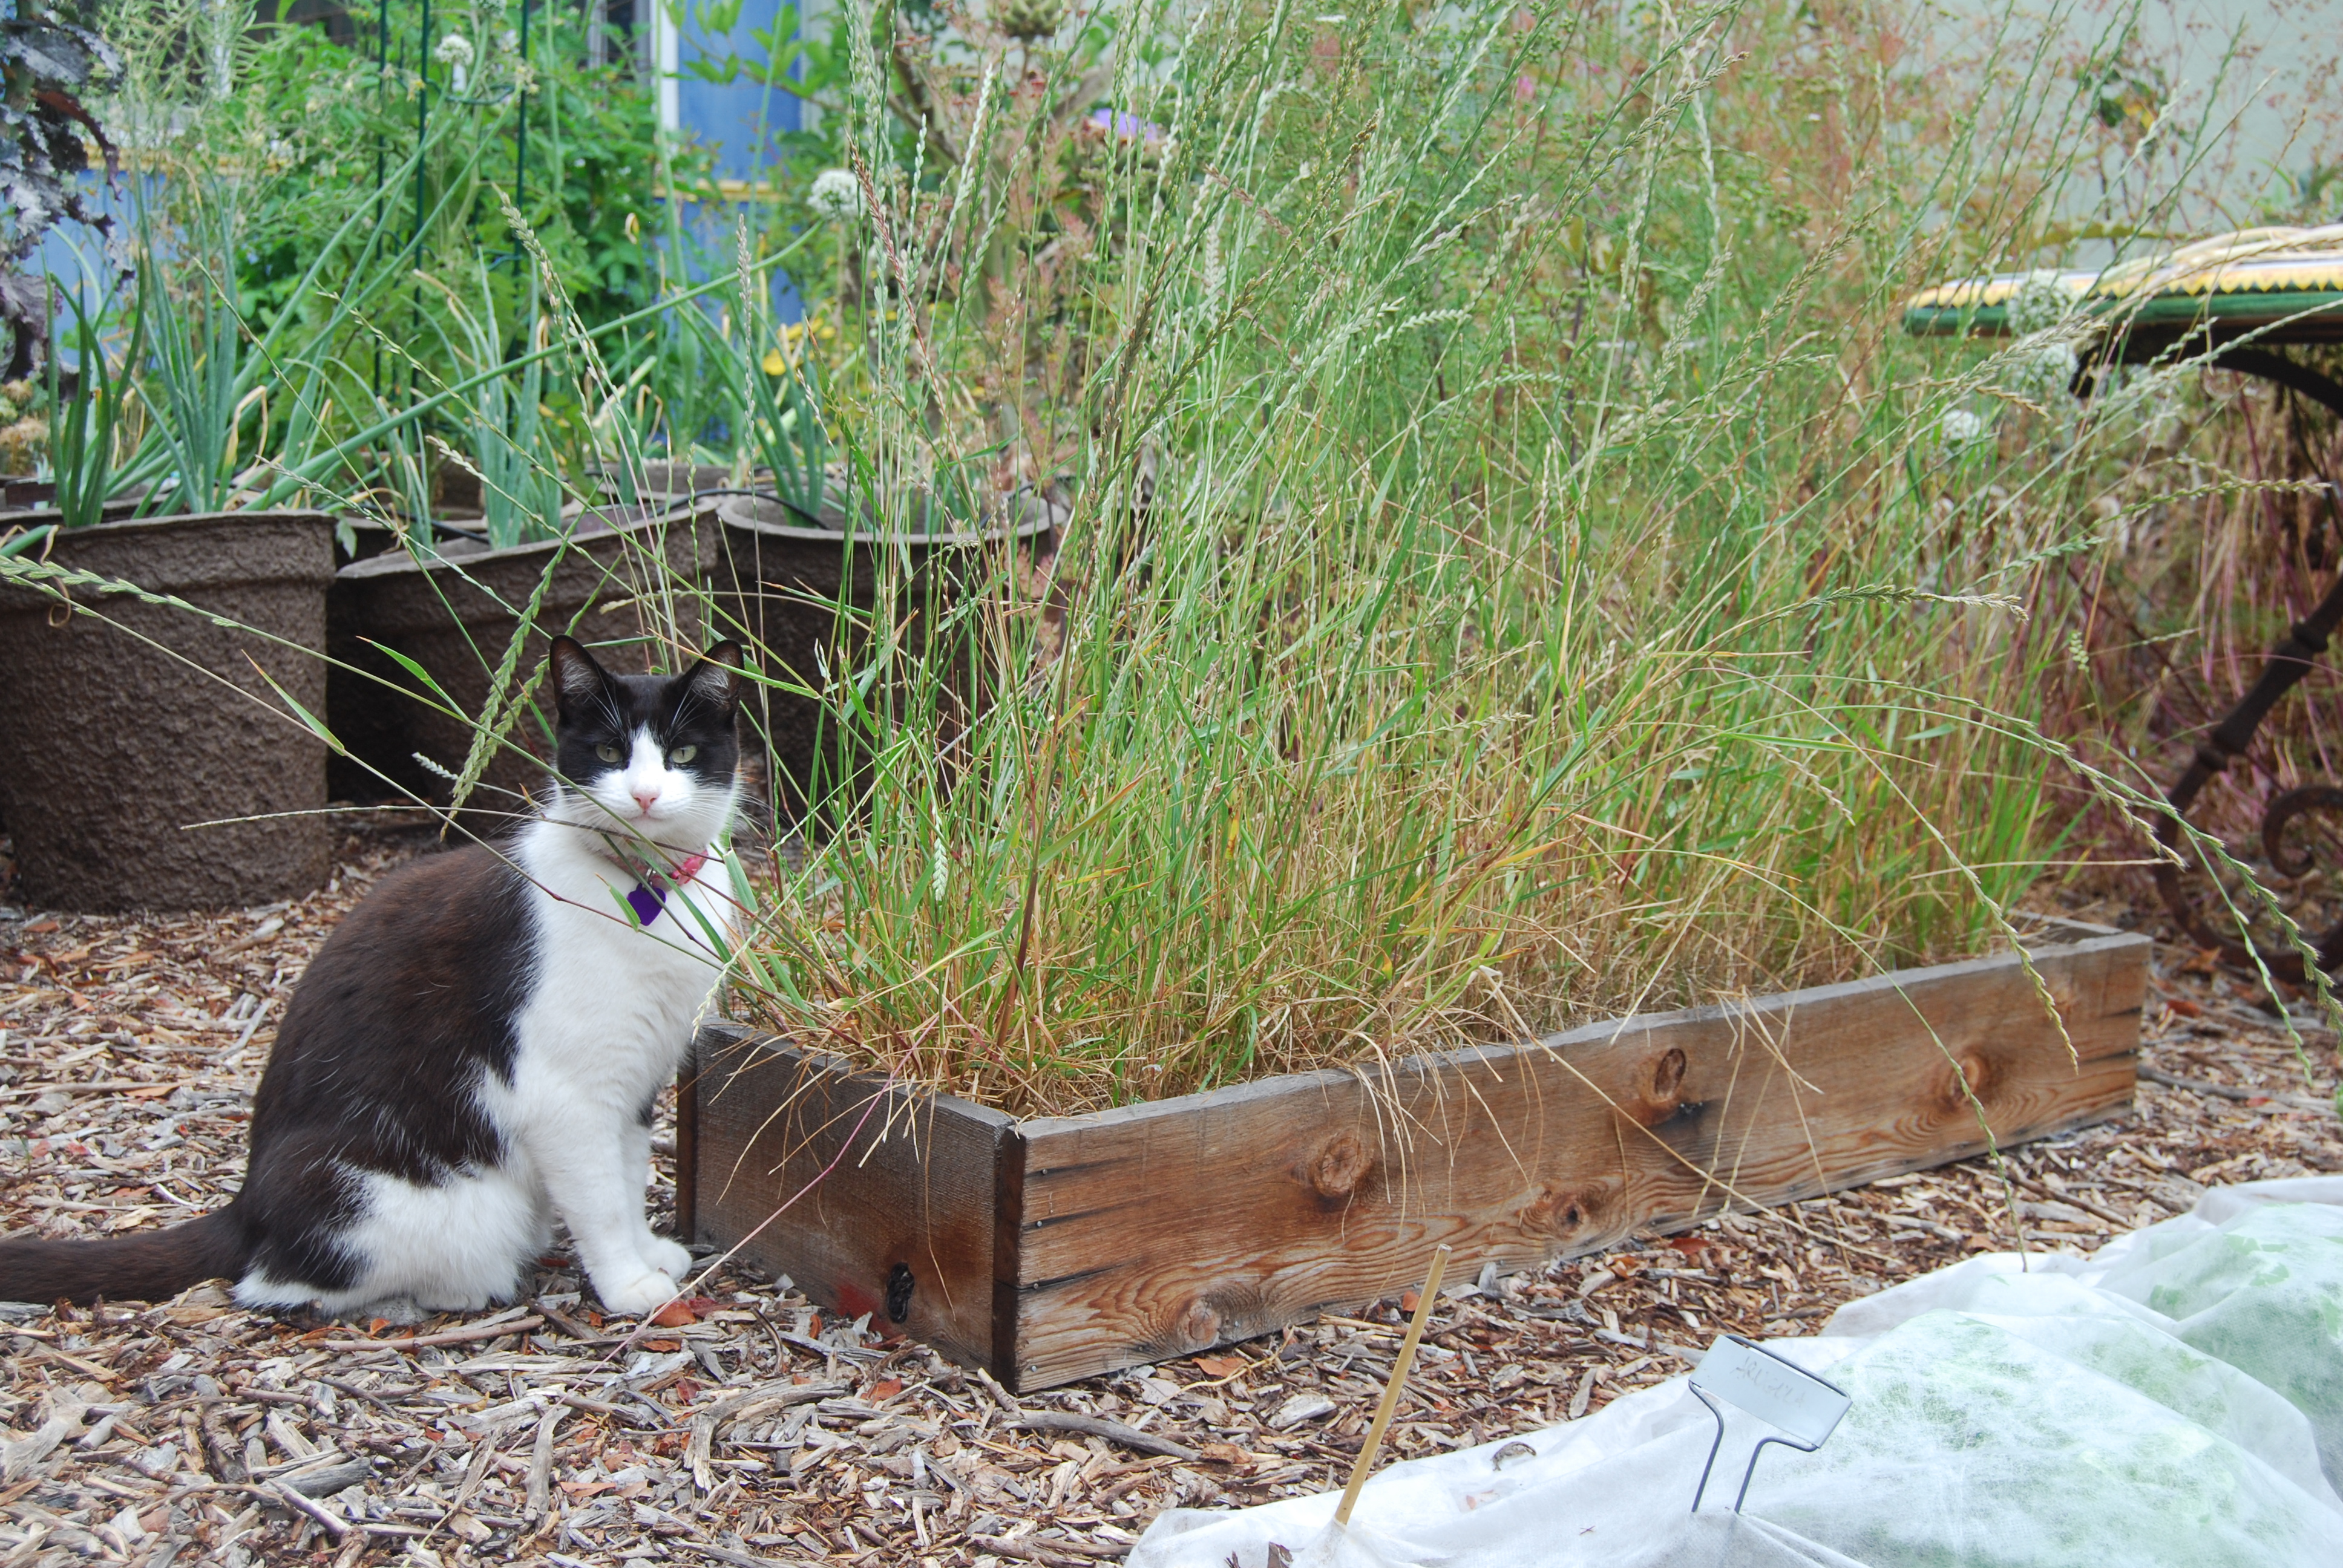 Sweet Mittens enjoys the seed heads from some overgrown chicken forage mix. She killed a rat the other day.